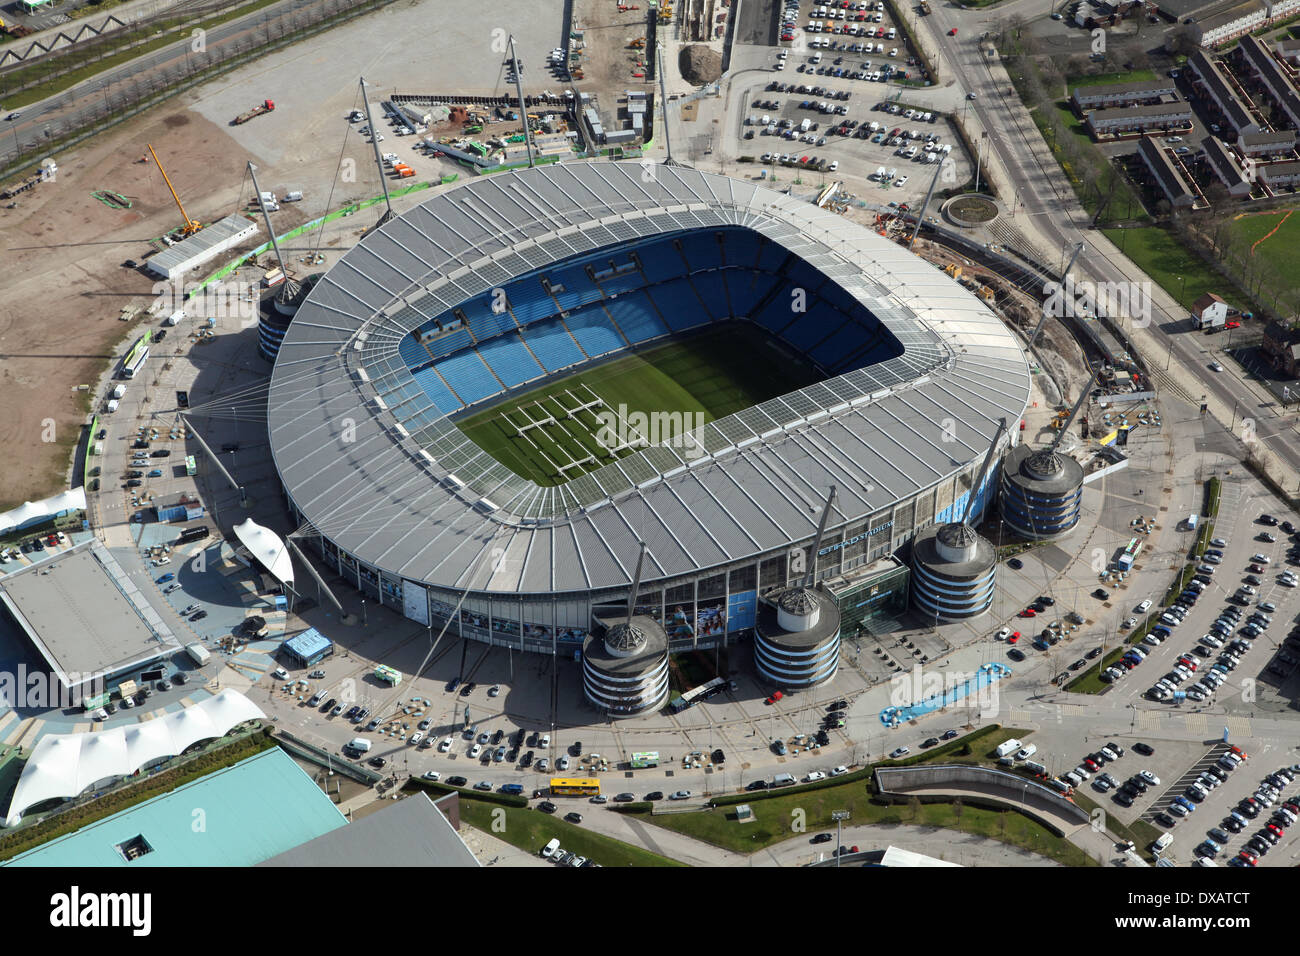 aerial view of the Etihad football stadium in Manchester. Home of Manchester City football club. - Stock Image